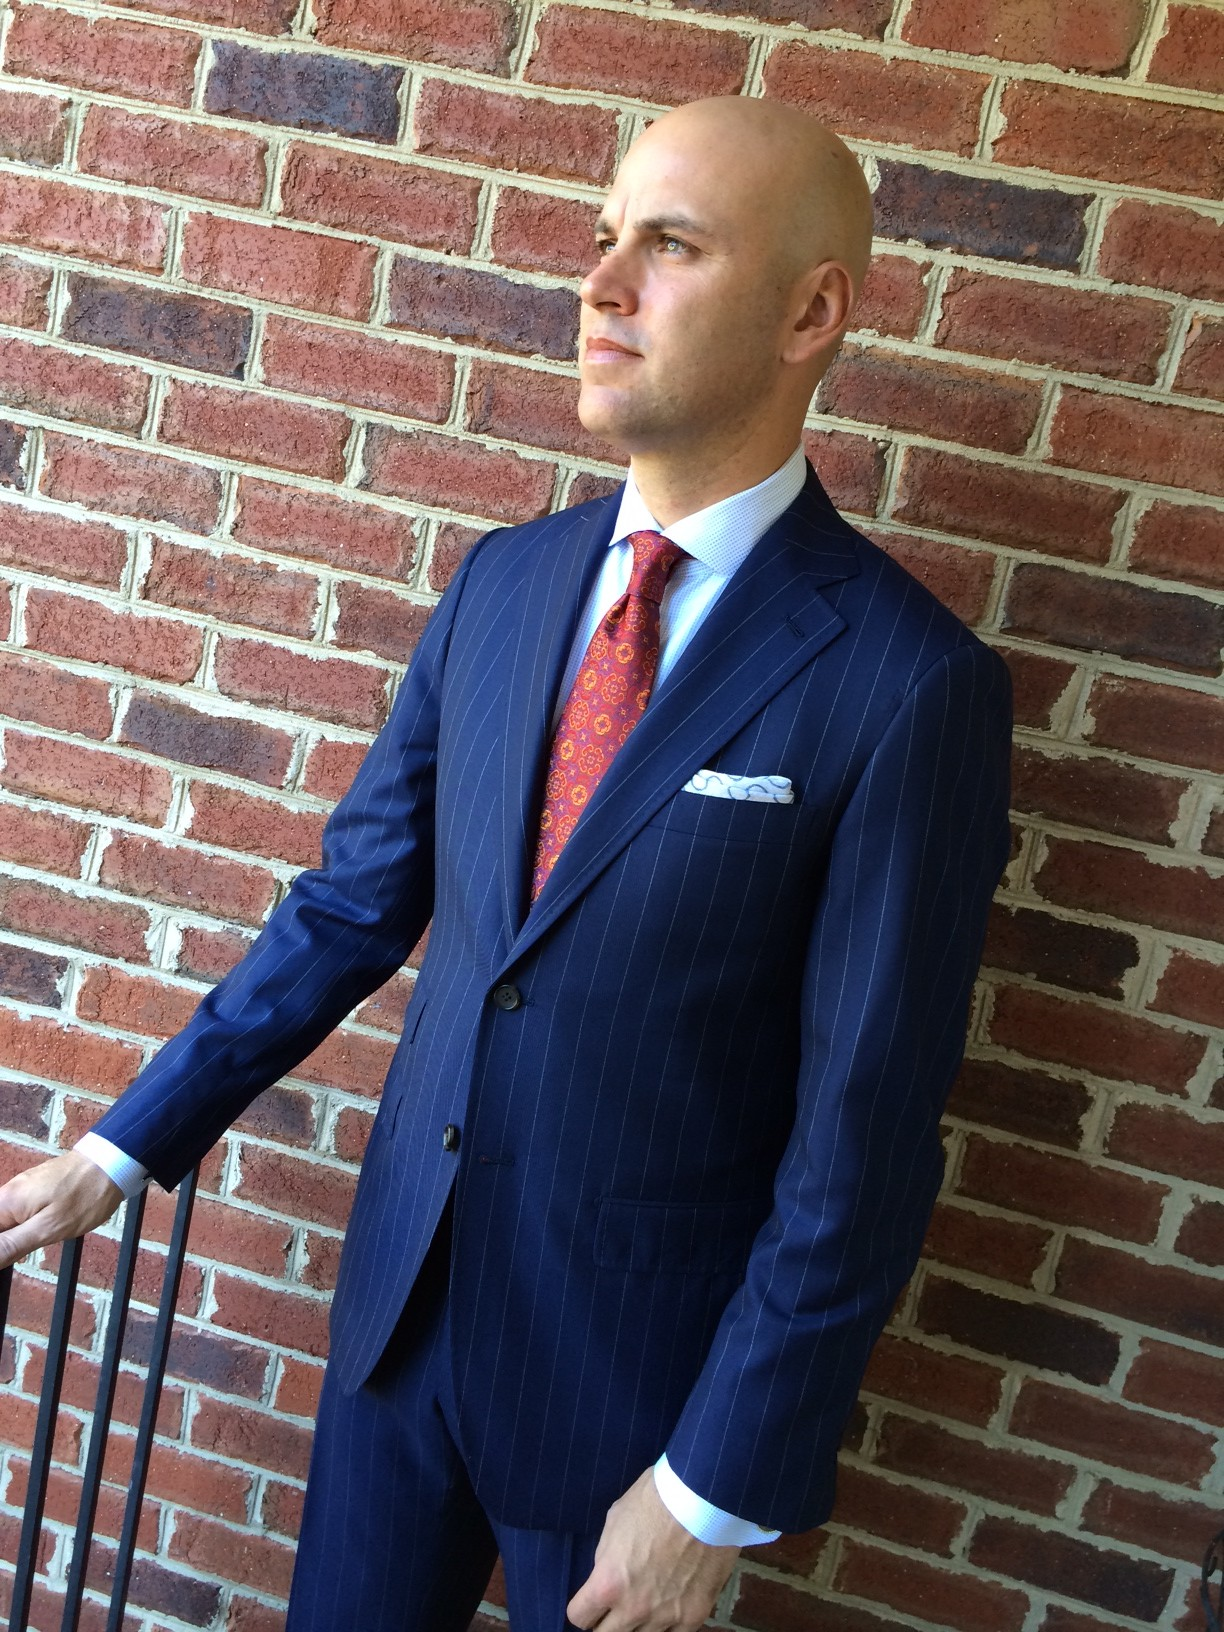 blue striped suit full image - JMac's Clothiers